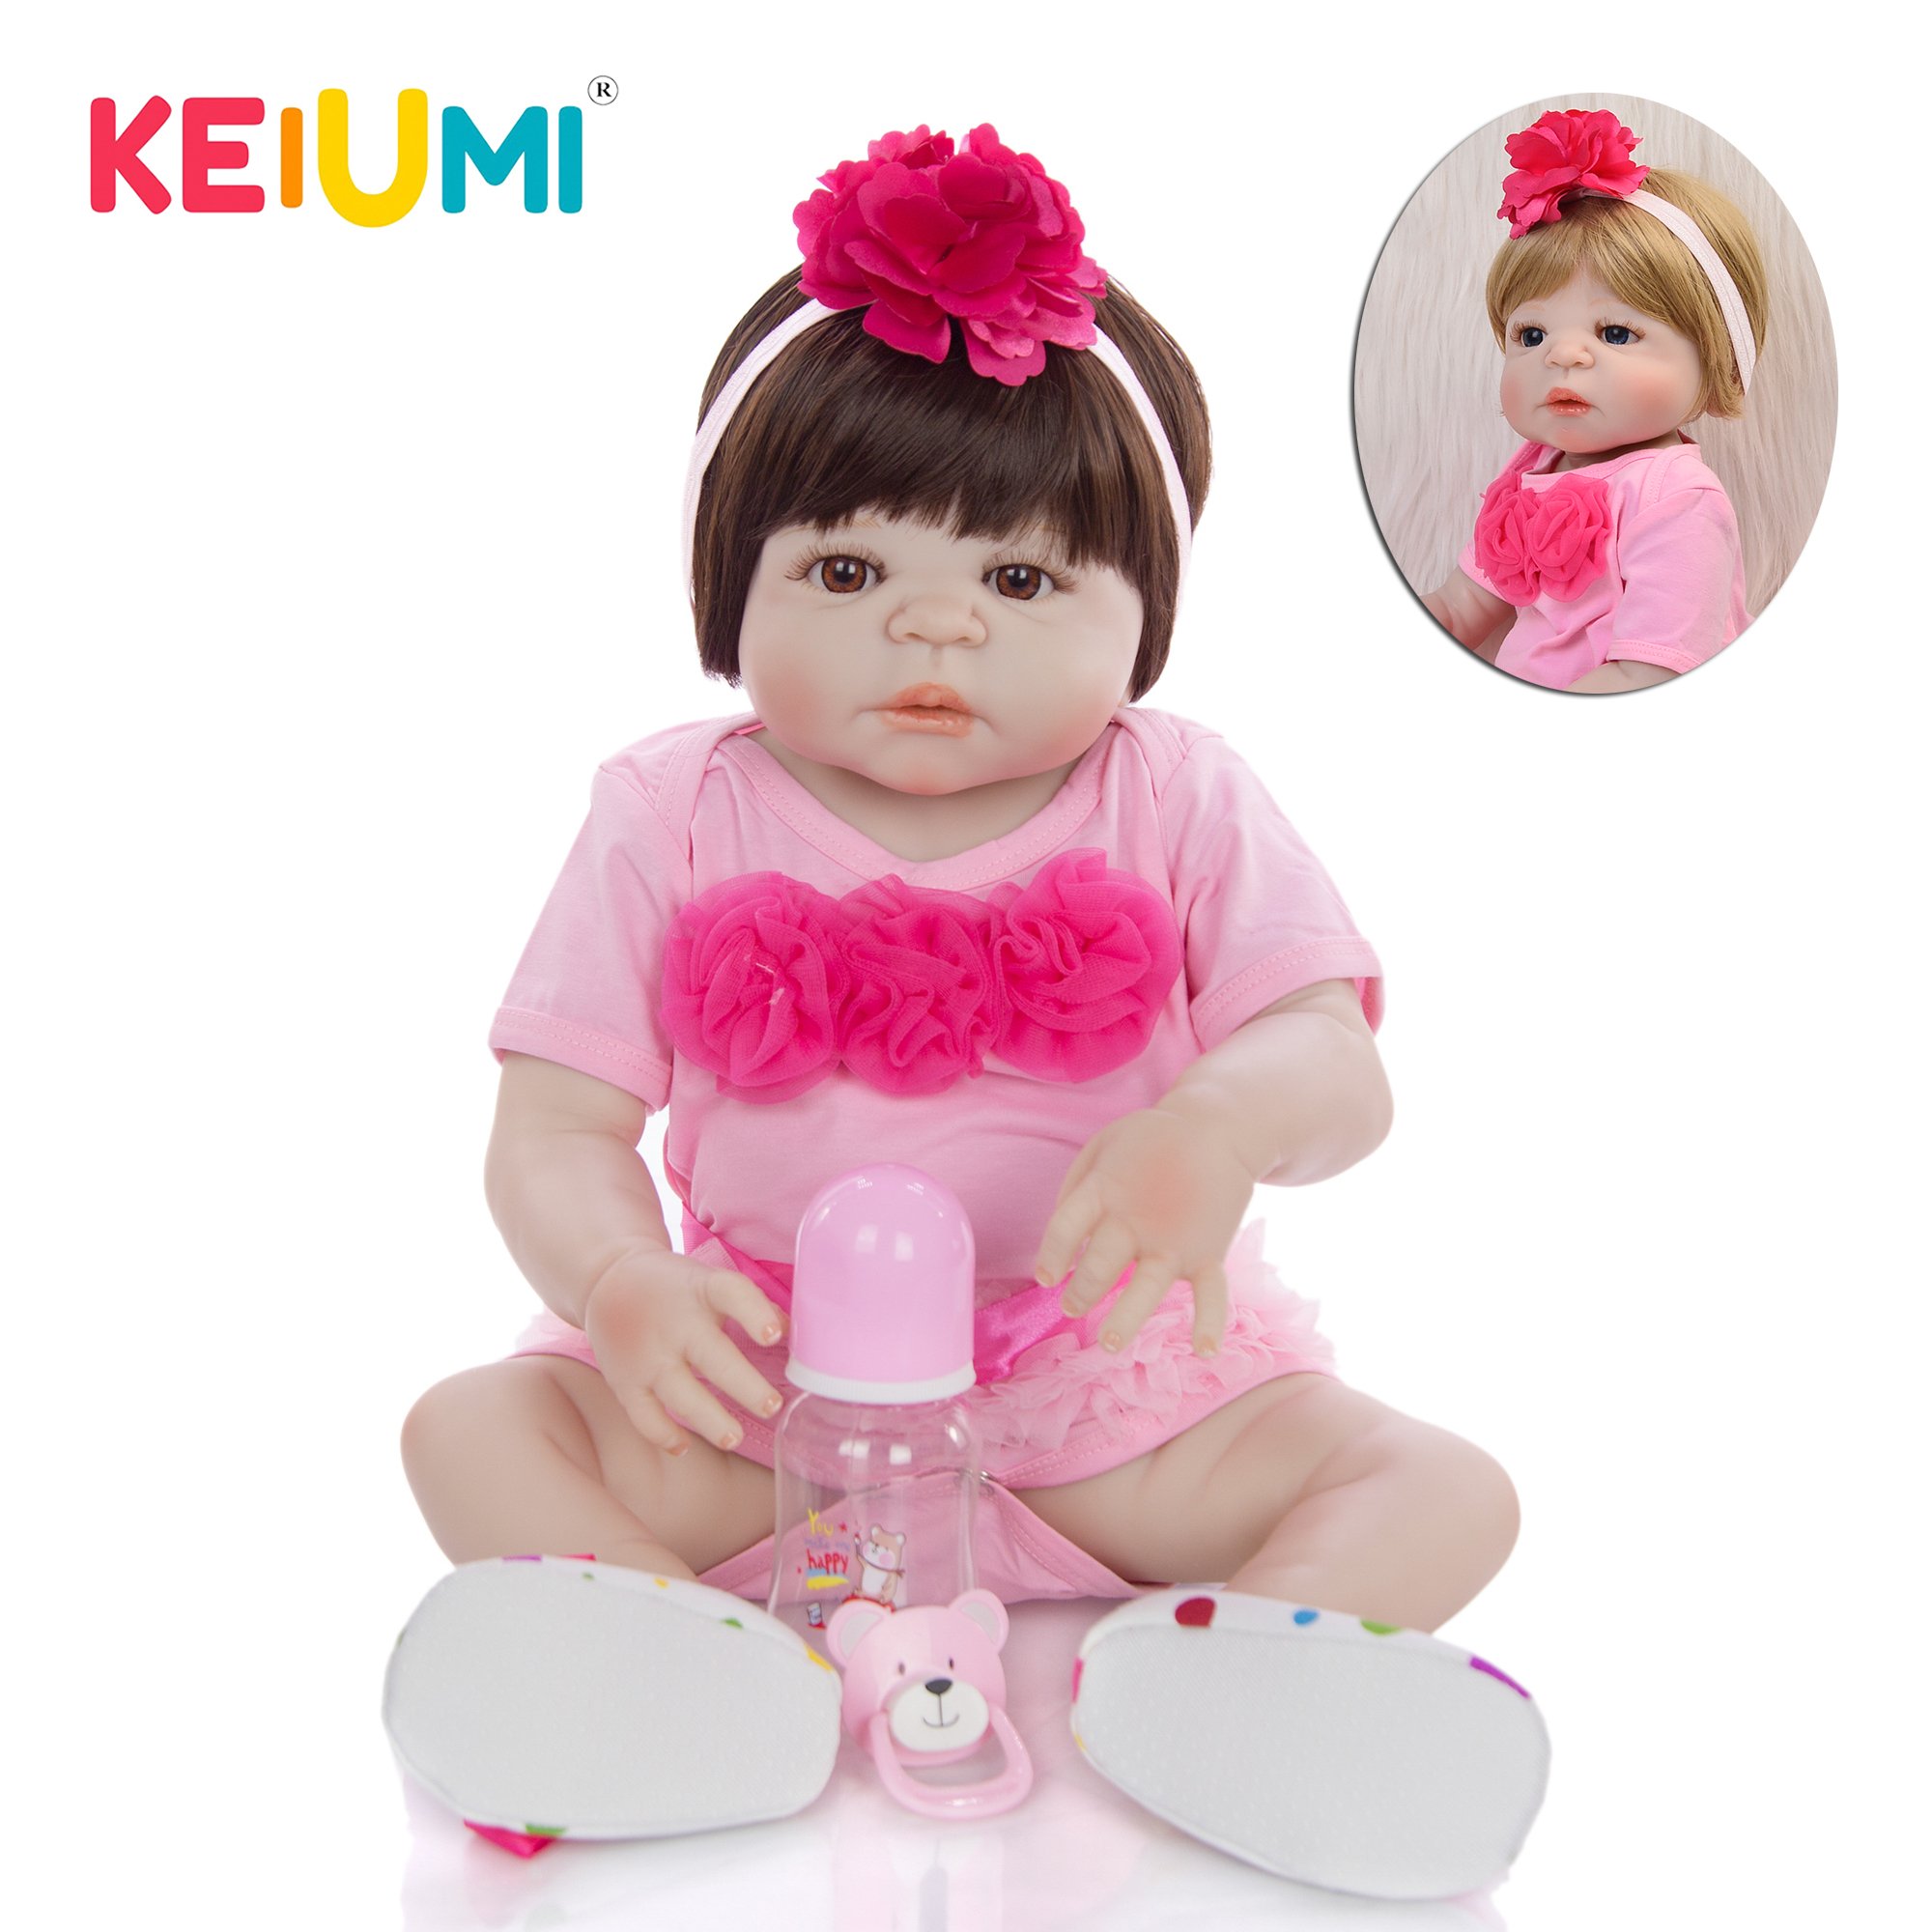 KEIUMI Hot 23 Reborn Baby Girl Full Silicone Vinyl Waterproof Body Fashion Gold or Brown hair